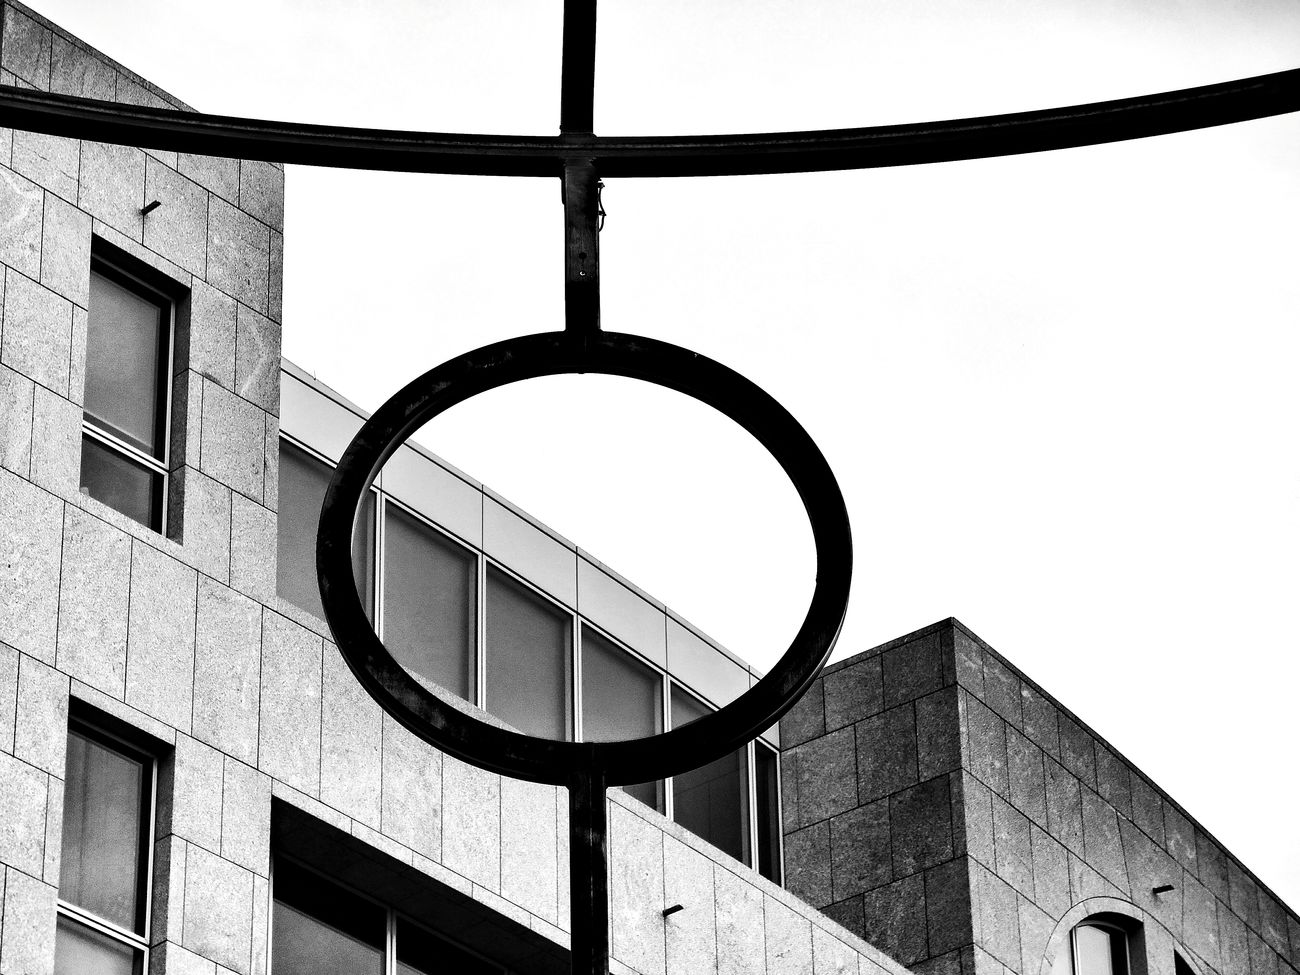 Blackandwhite Graphic High Contrast Urban Geometry Cross